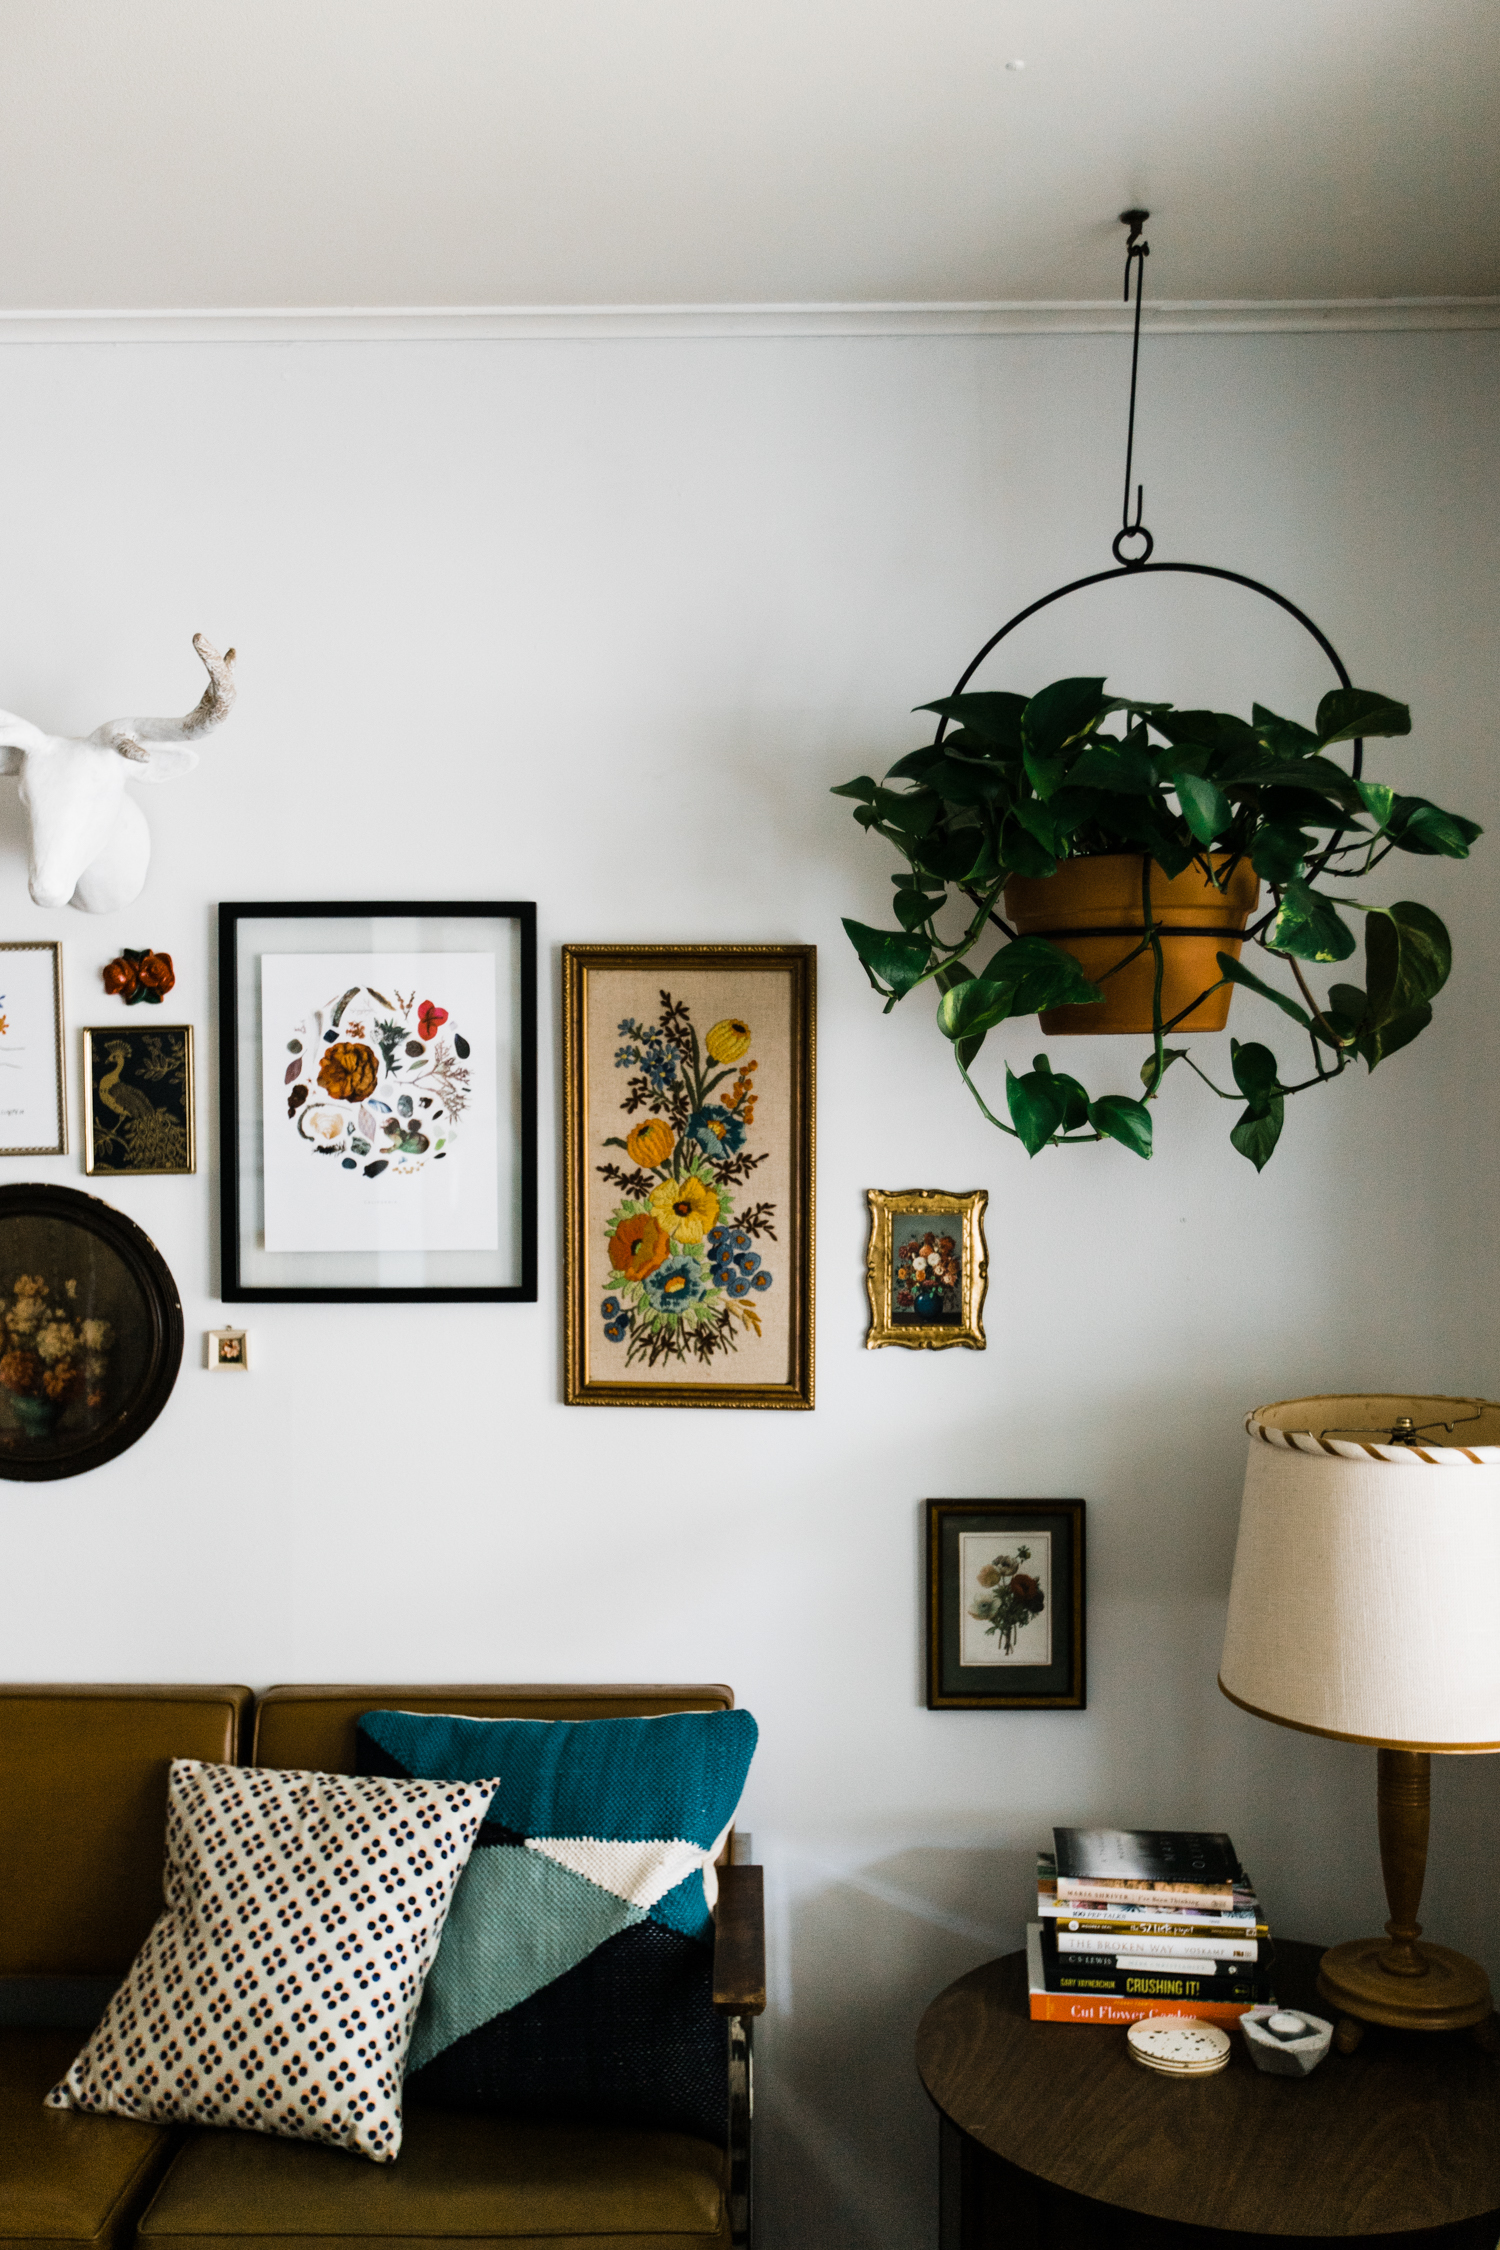 Abbey-Wells-Home-eclectic-colorful-home-WEB-65.jpg